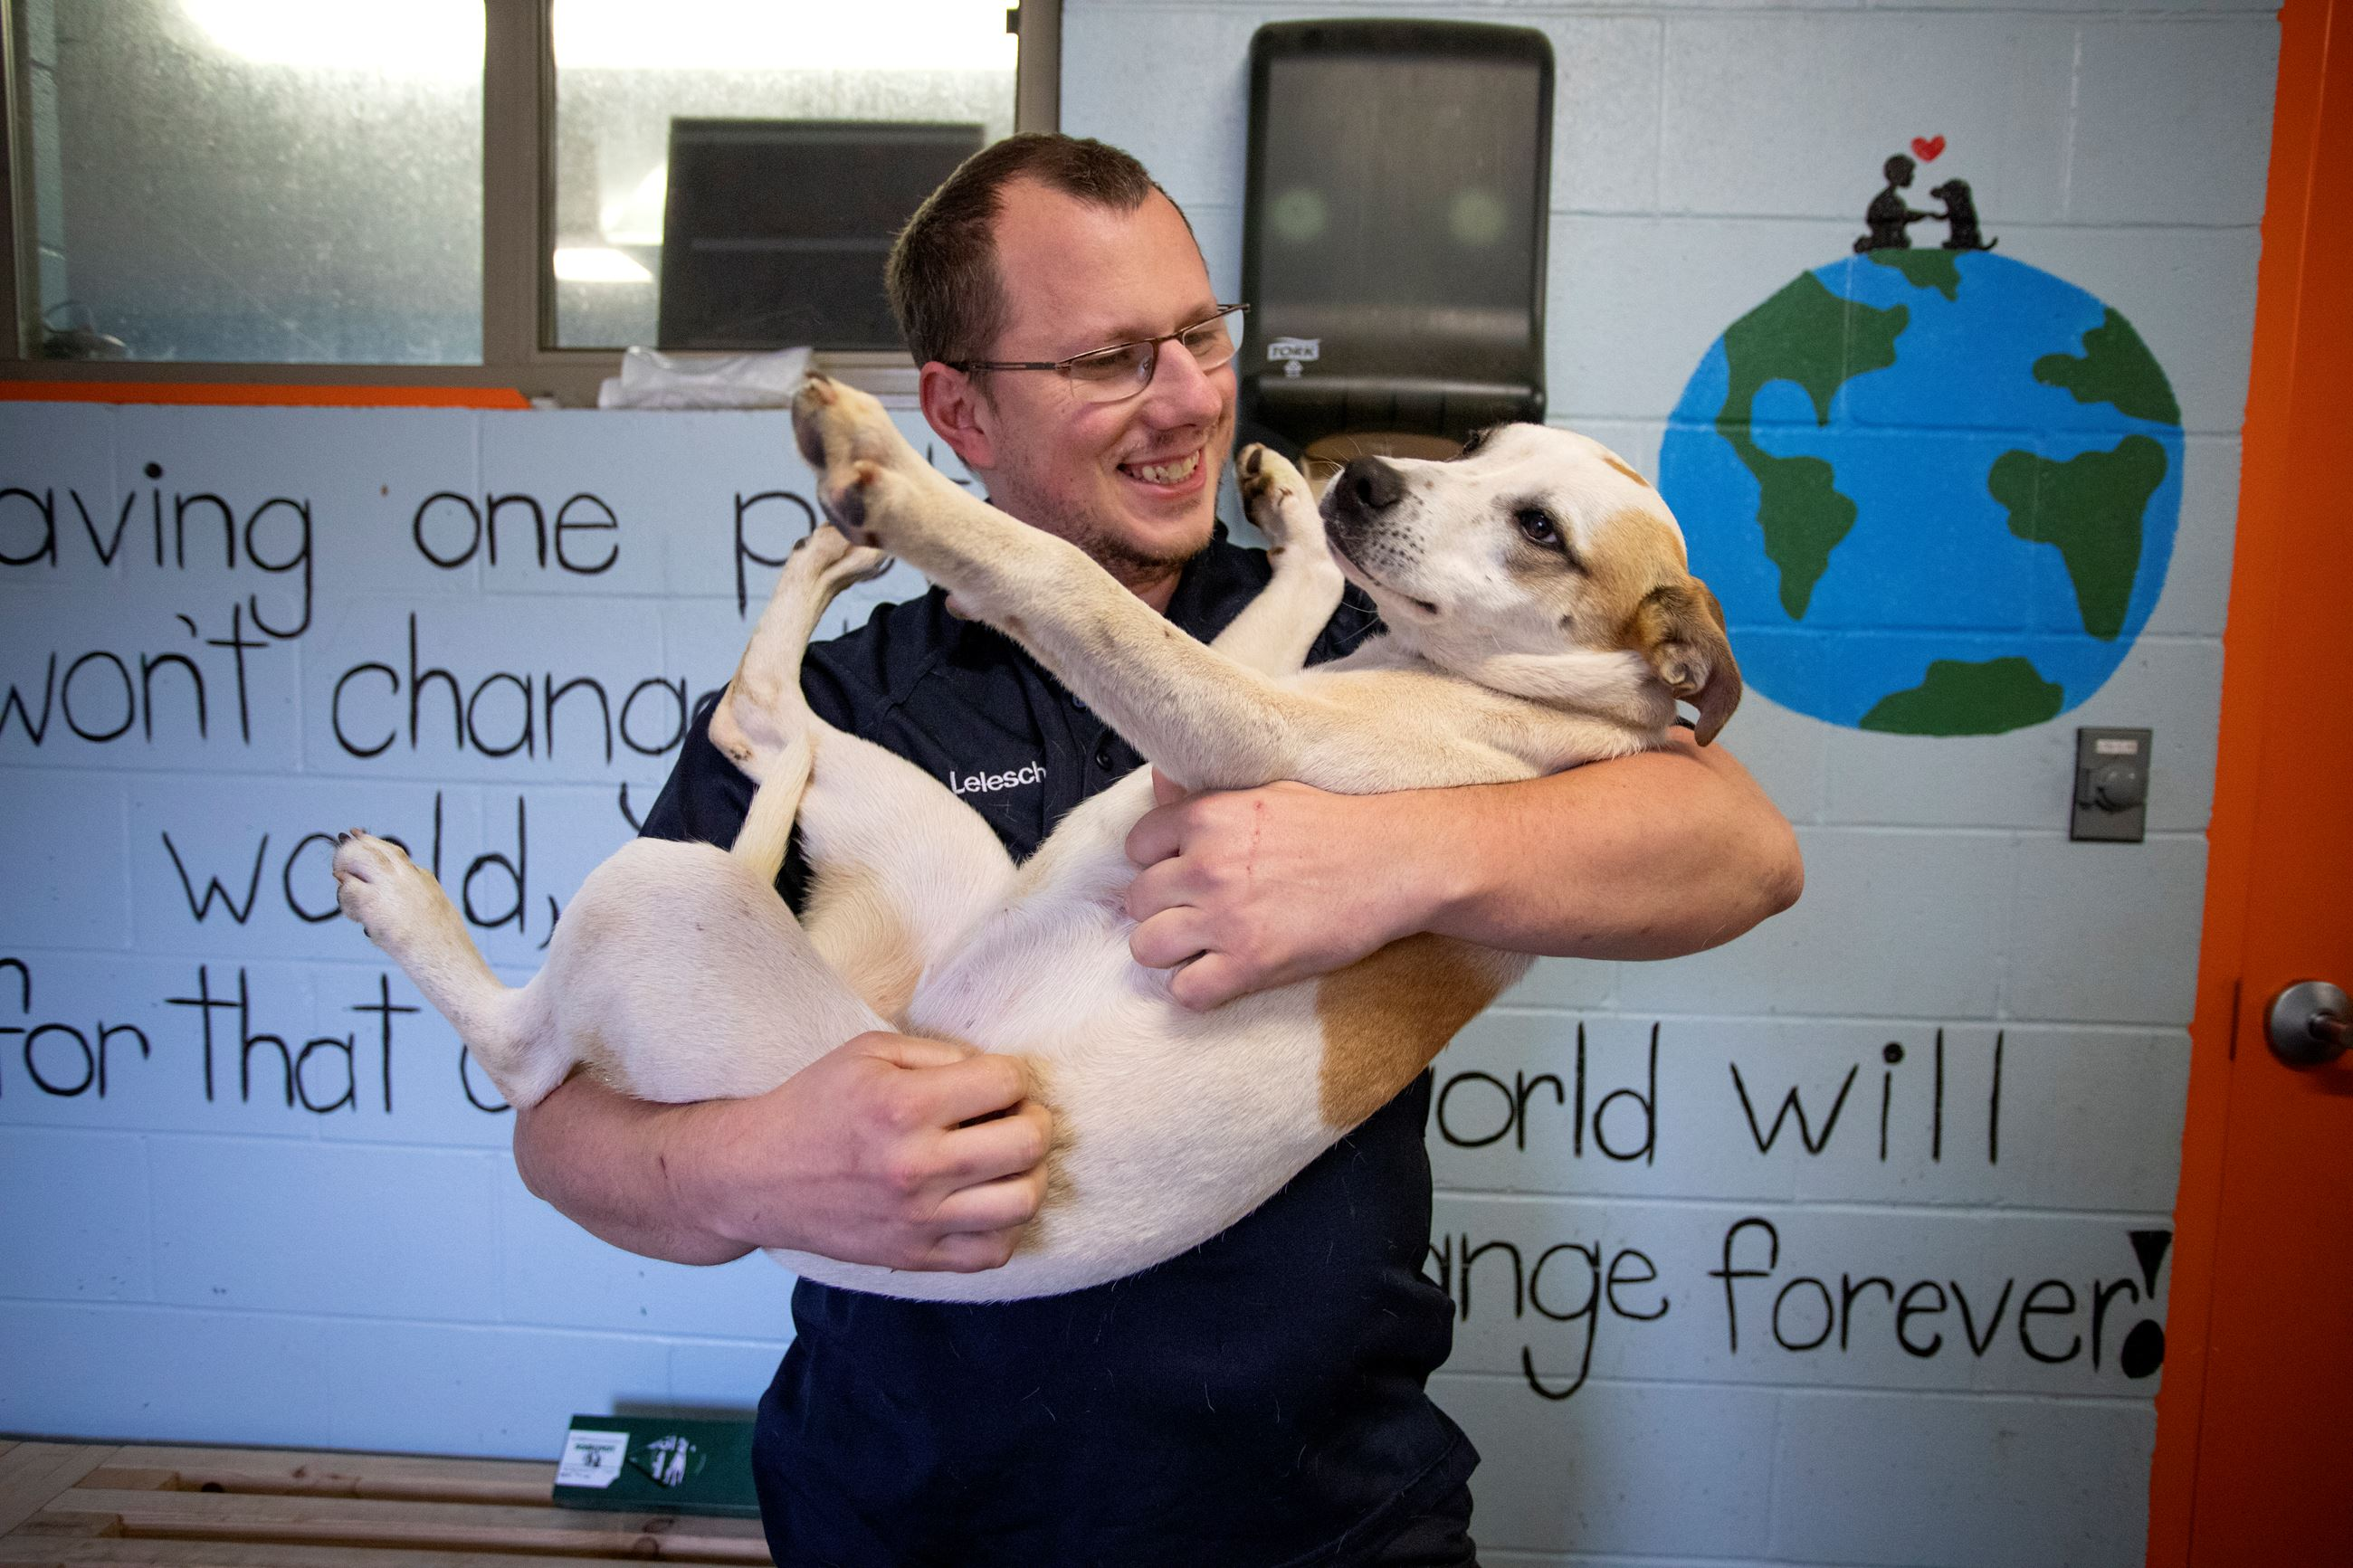 Justin Lelesch, the new animal services director holding and playing with a dog at the shelter